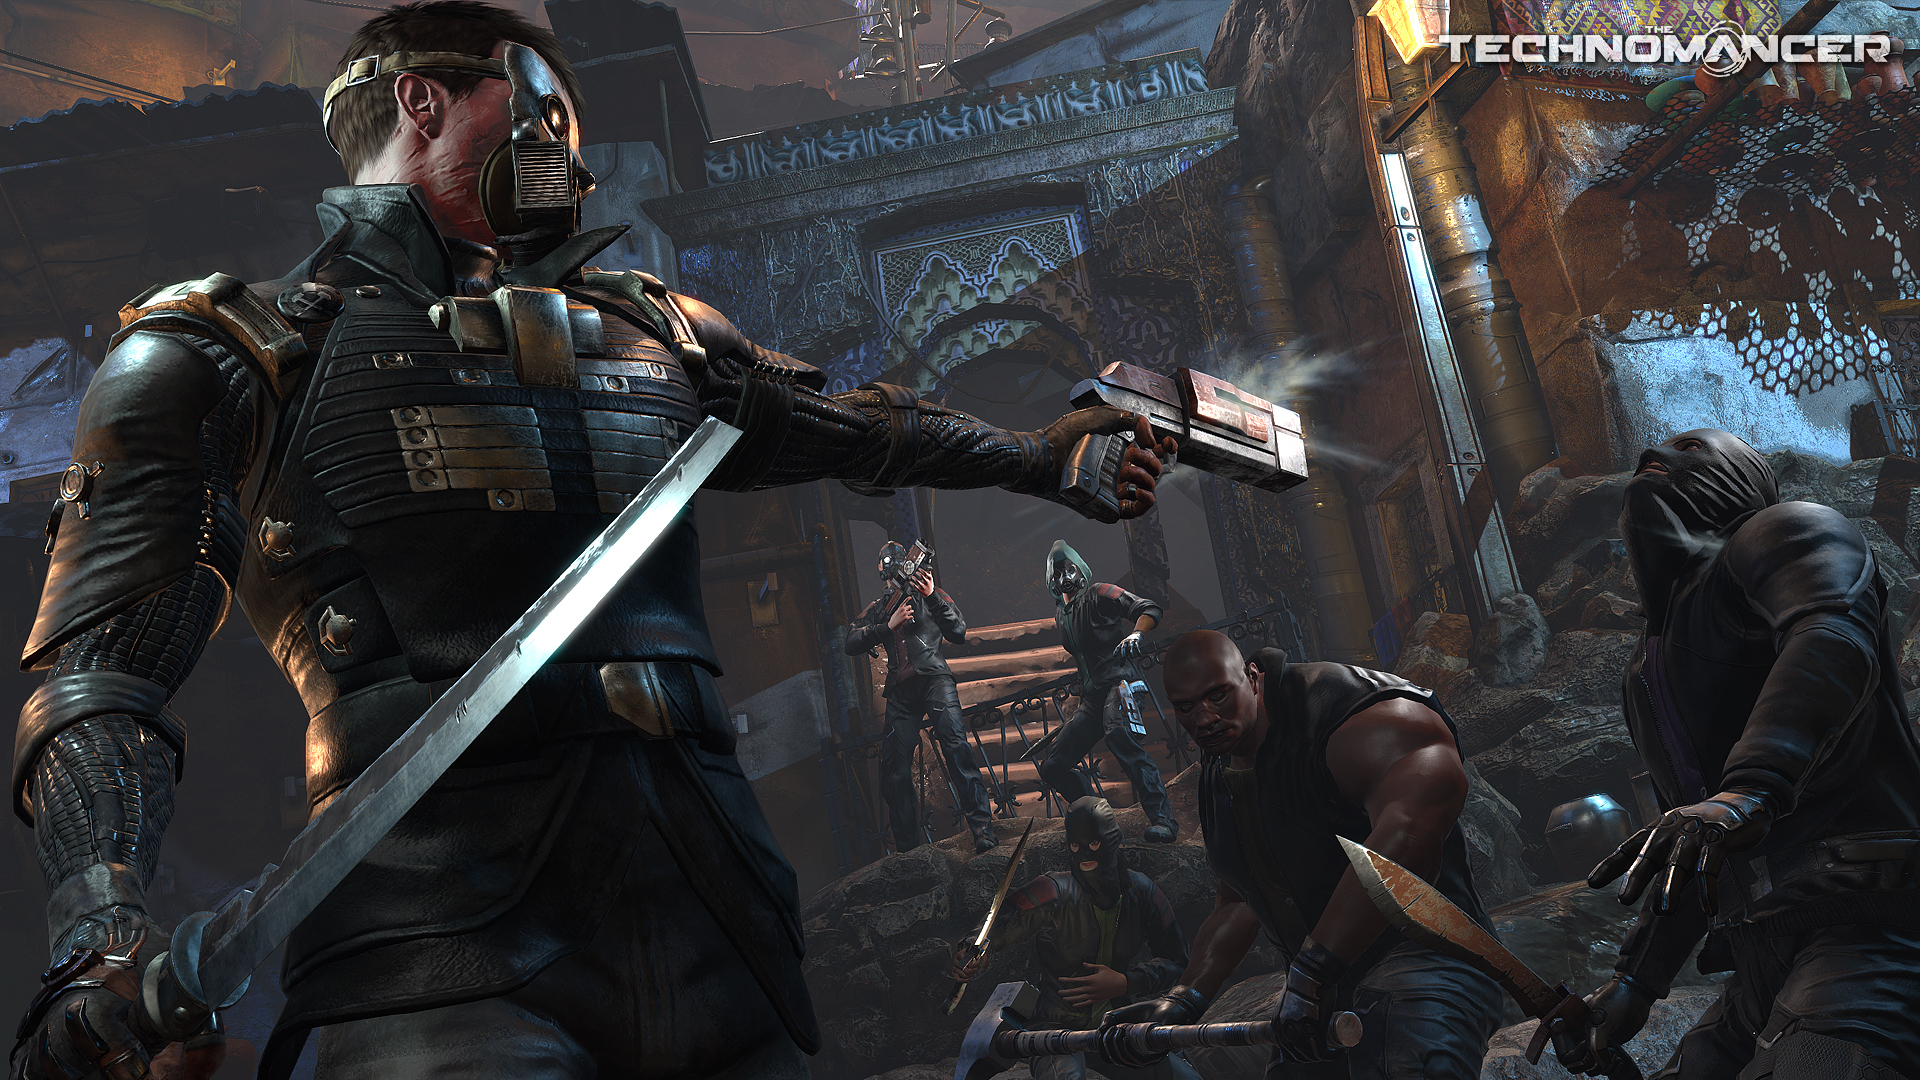 UPDATE - Not Locked After All] The Technomancer Locked